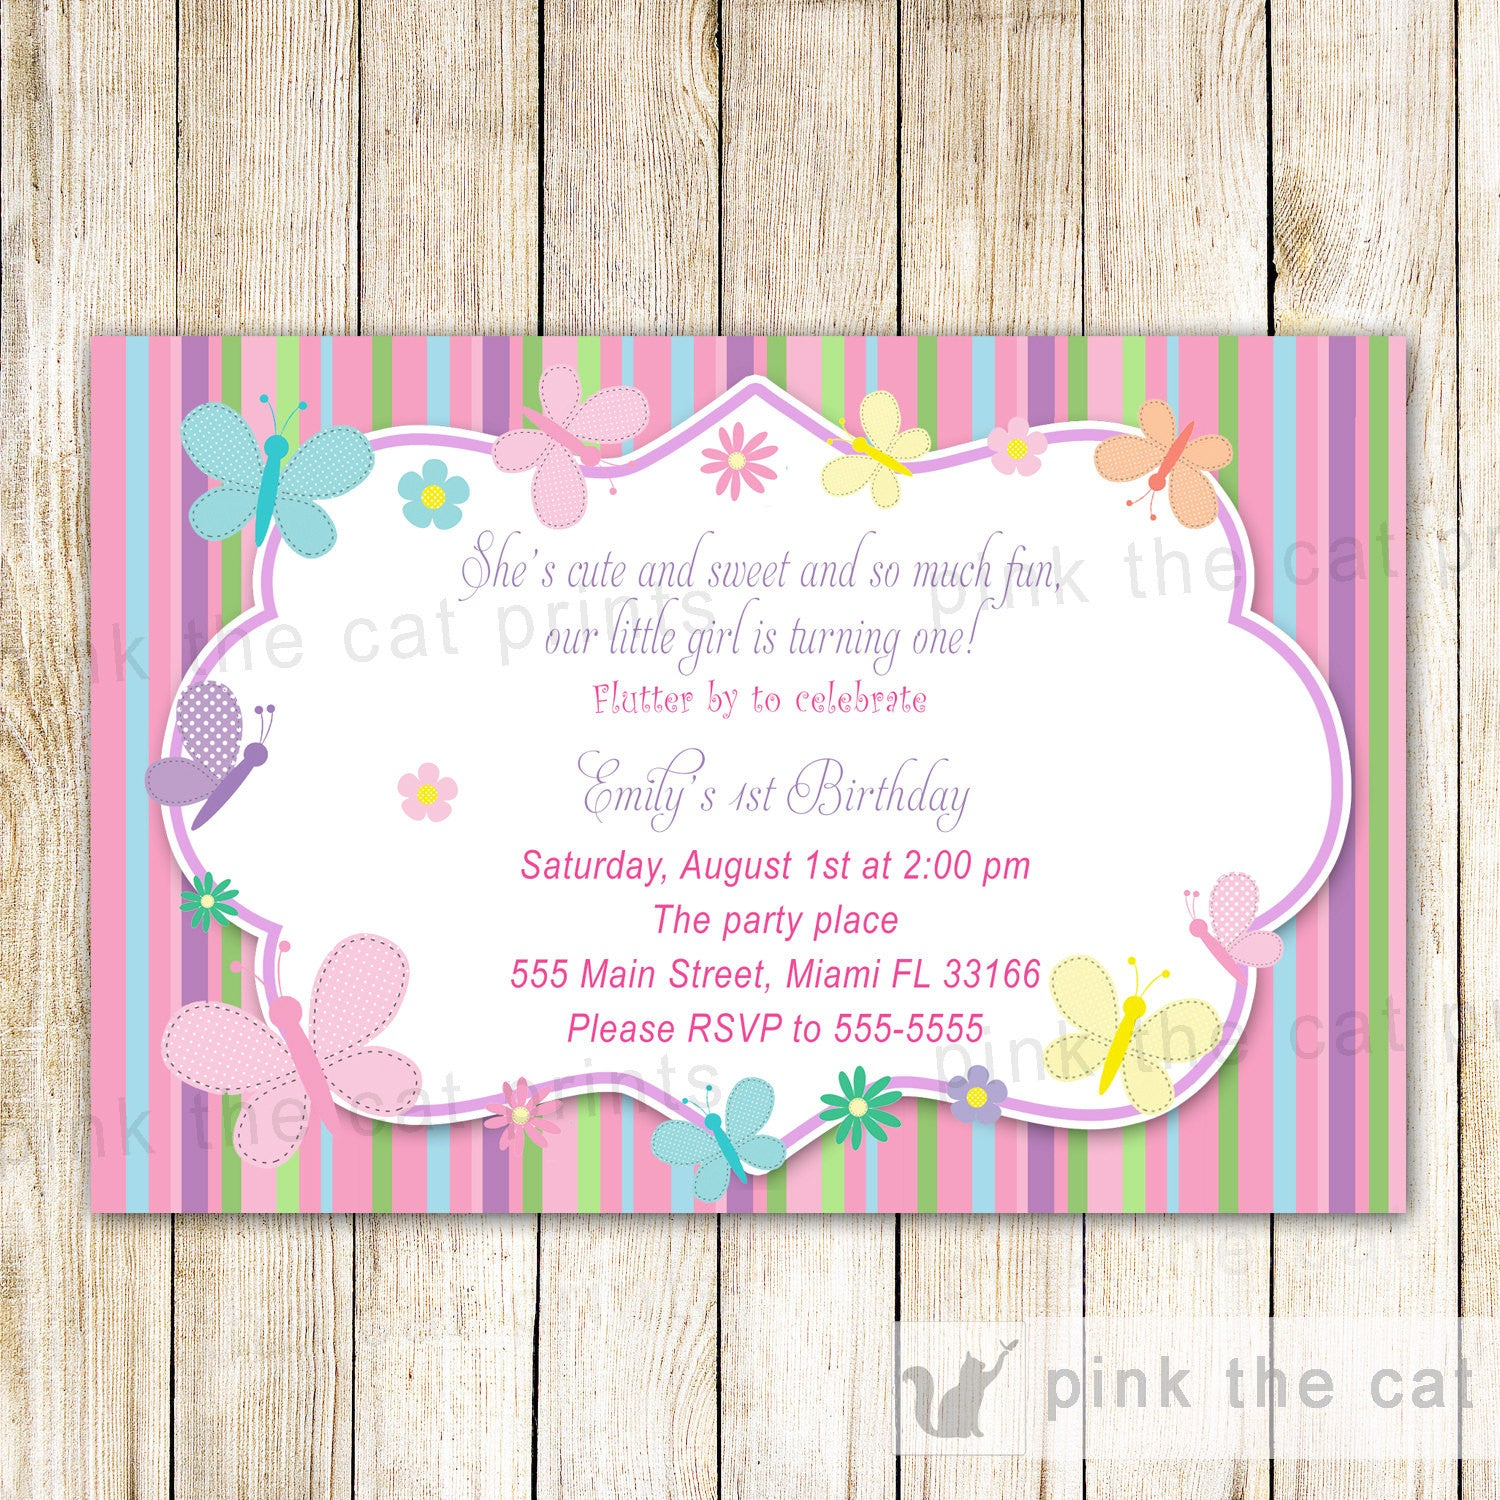 Butterfly Invitation Girl Birthday Party Baby Shower Pink The Cat